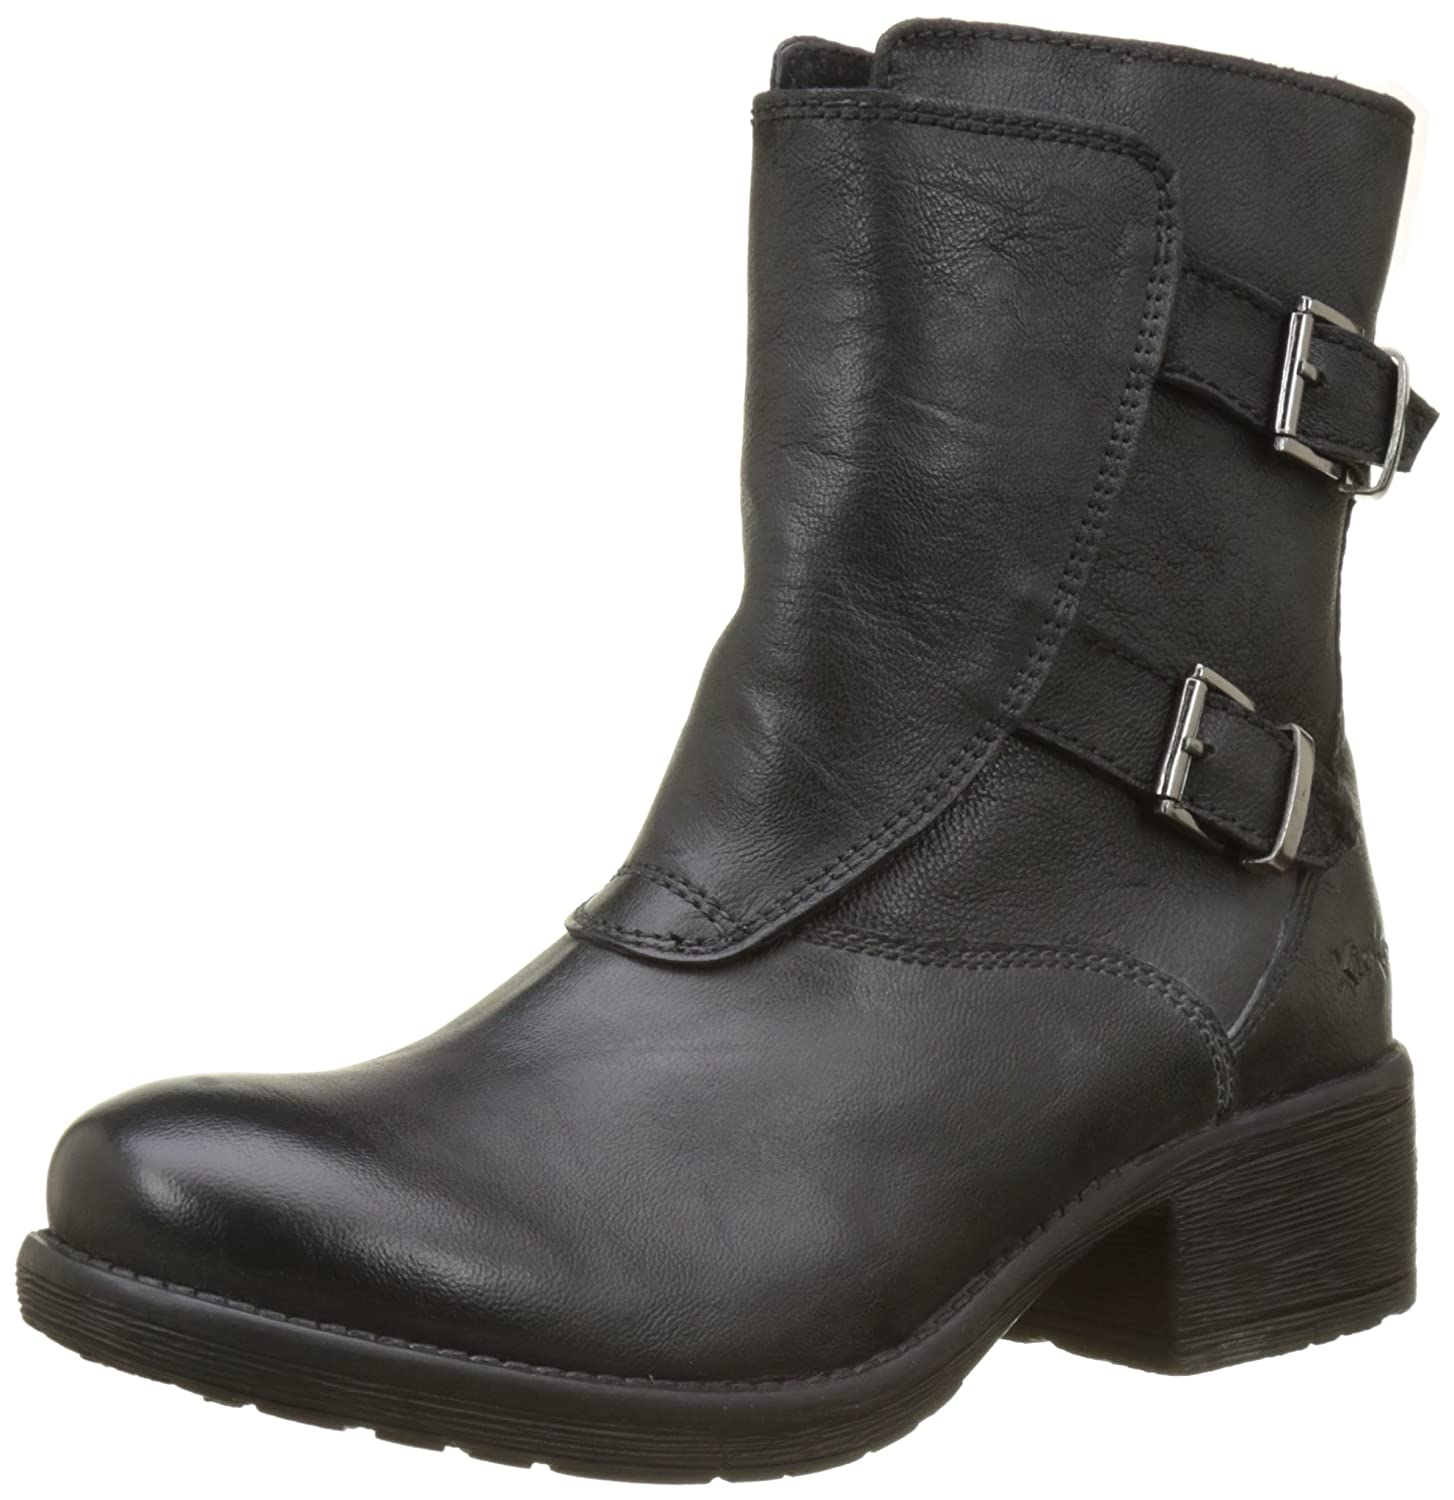 ee90494a Kickers Women 589040-50-8 Biker Boots Black Size: 6 UK: Amazon.co.uk ...